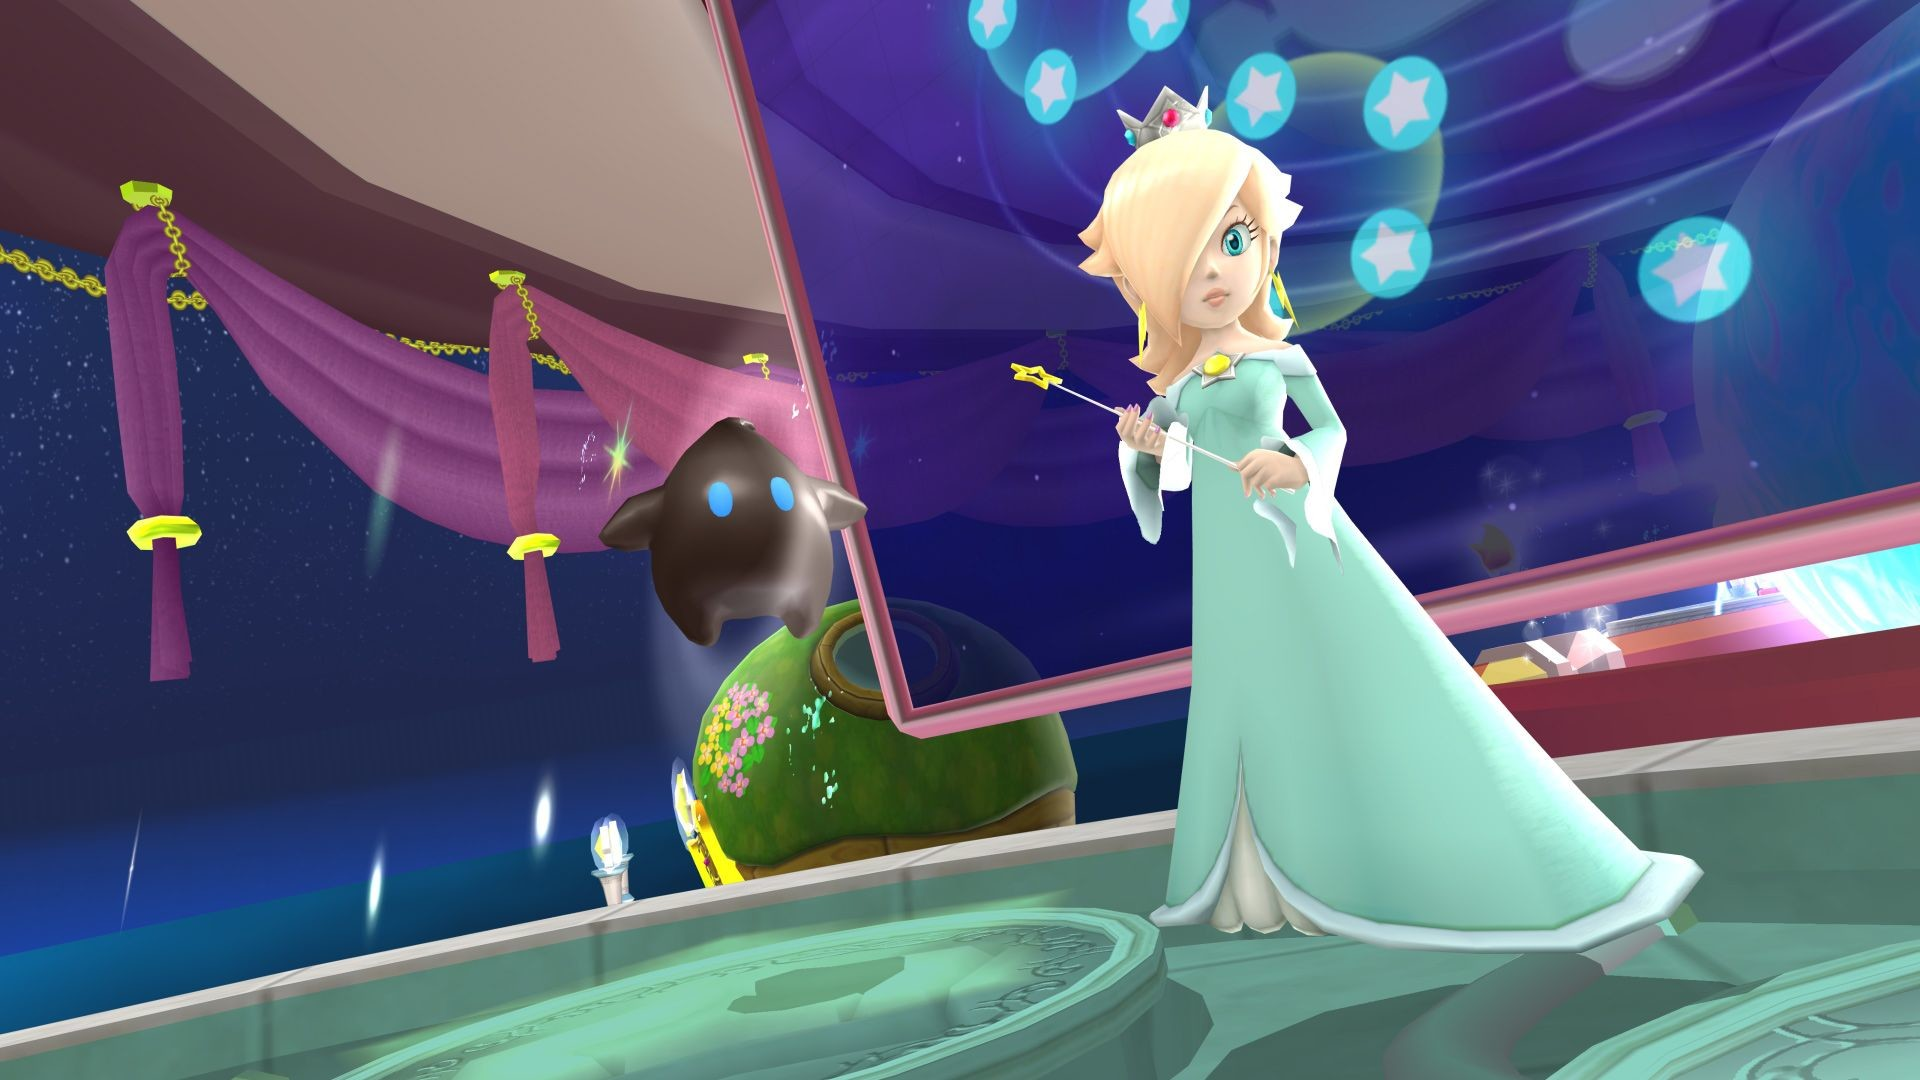 1920x1080 Princess Rosalina wallpaper - 1273675